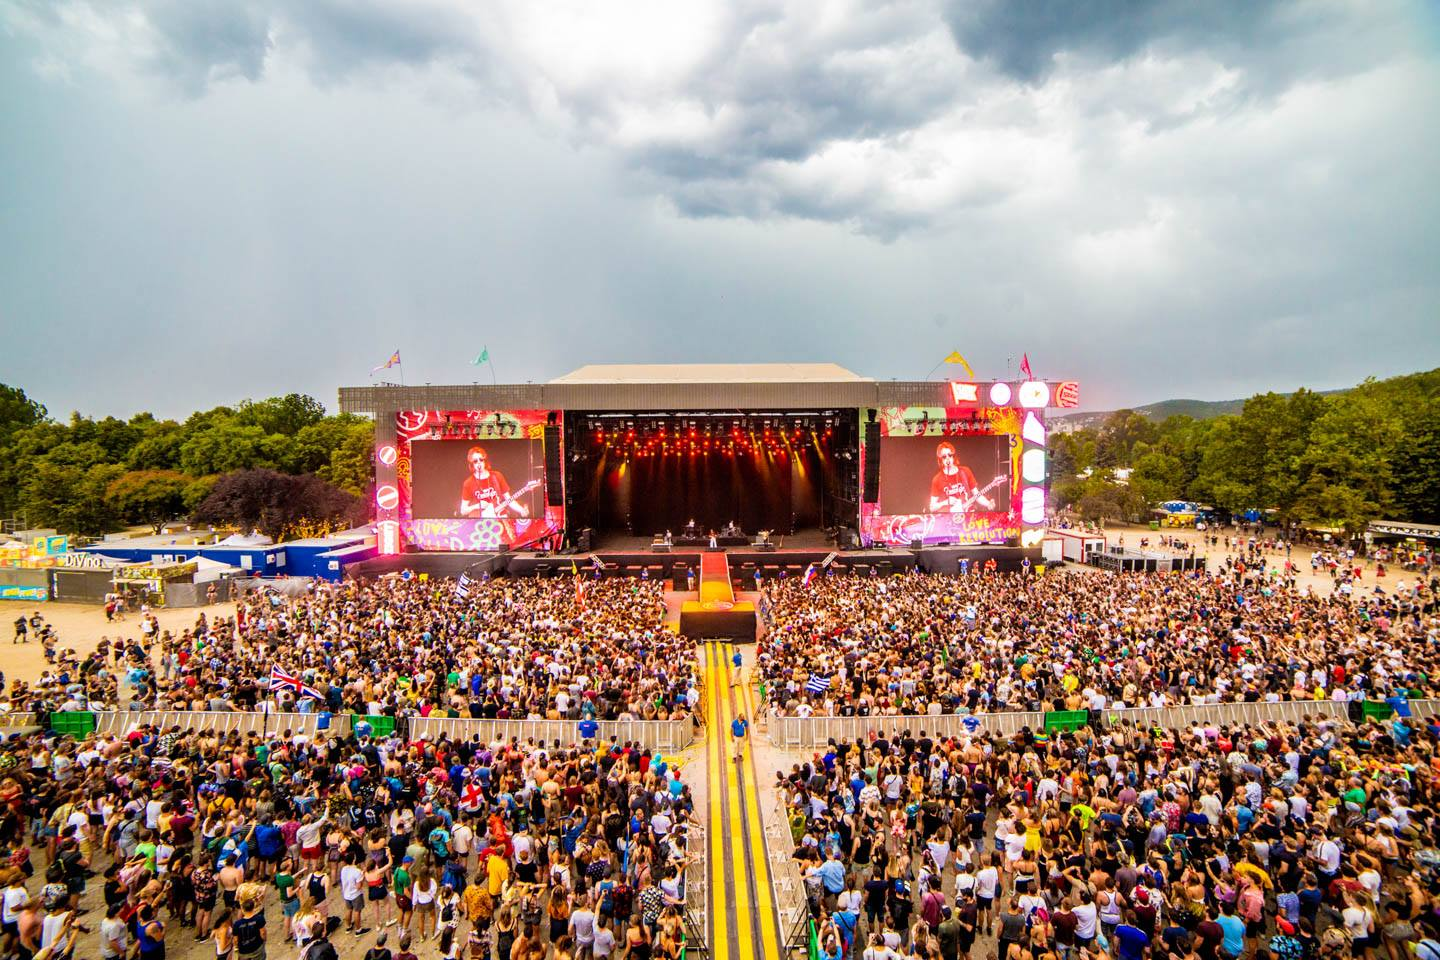 565,000+ Attend Love Revolution @ Sziget